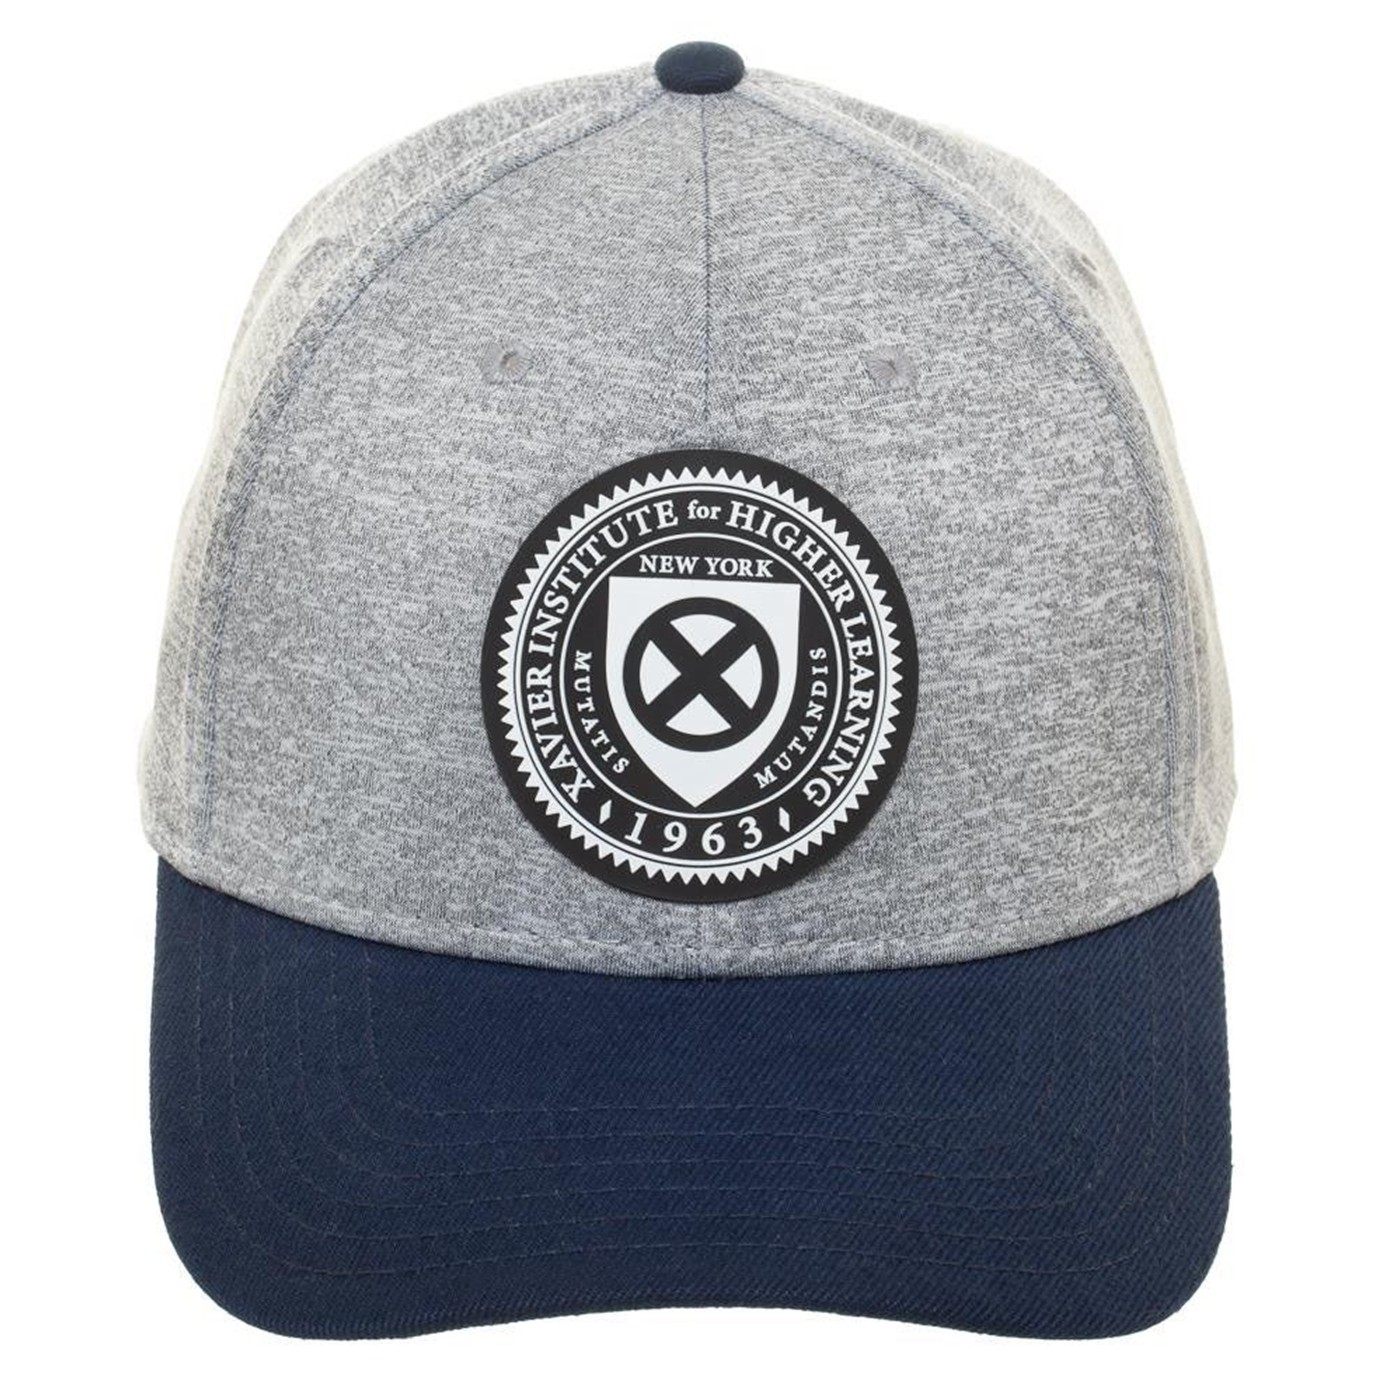 Xavier School For The Gifted Flex Fit Hat